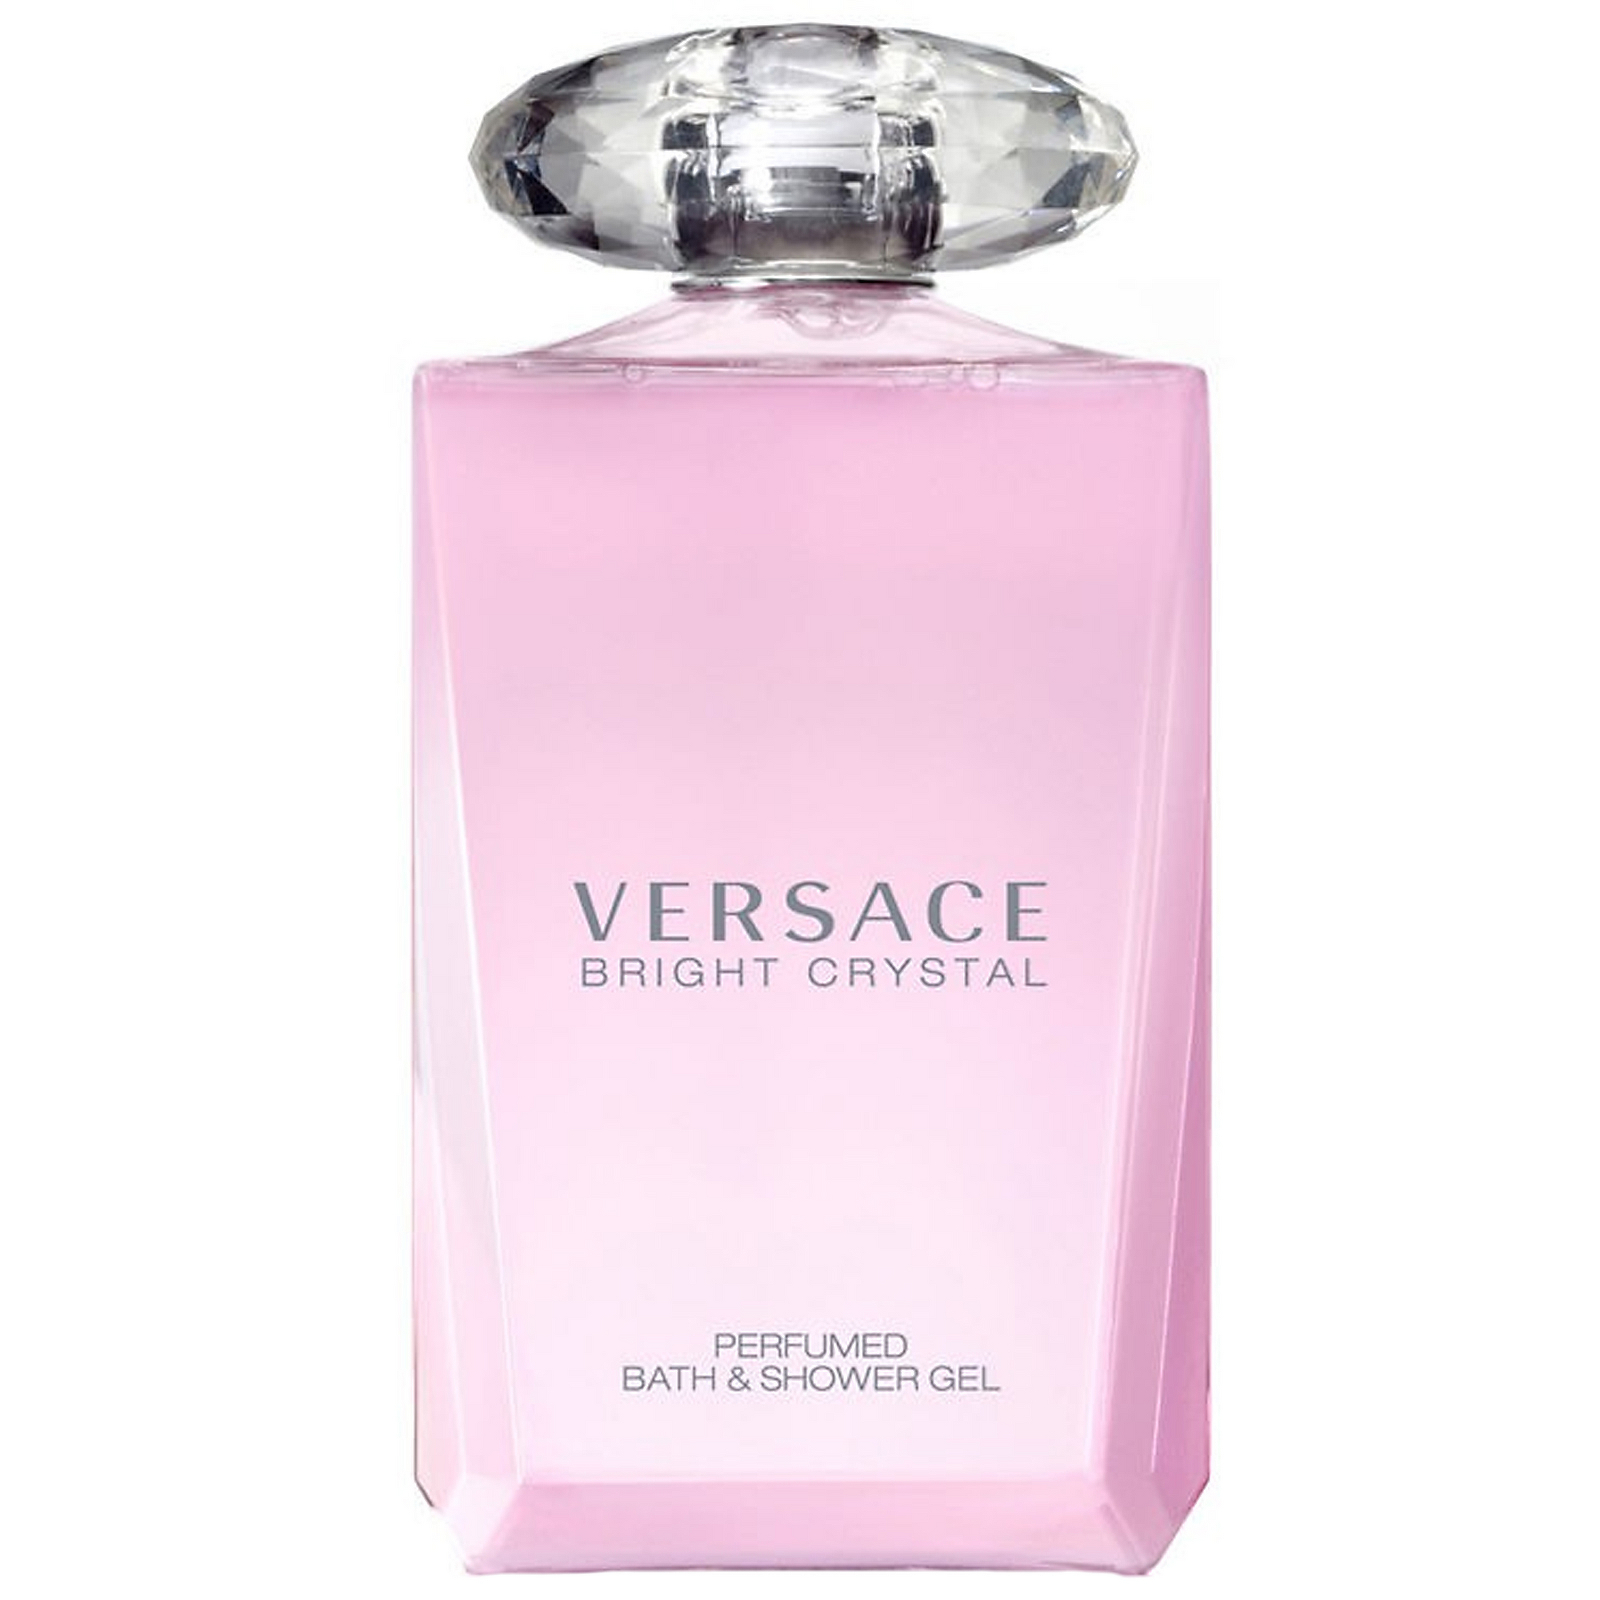 Versace Bright Crystal Perfumed Bath and Shower Gel 200ml